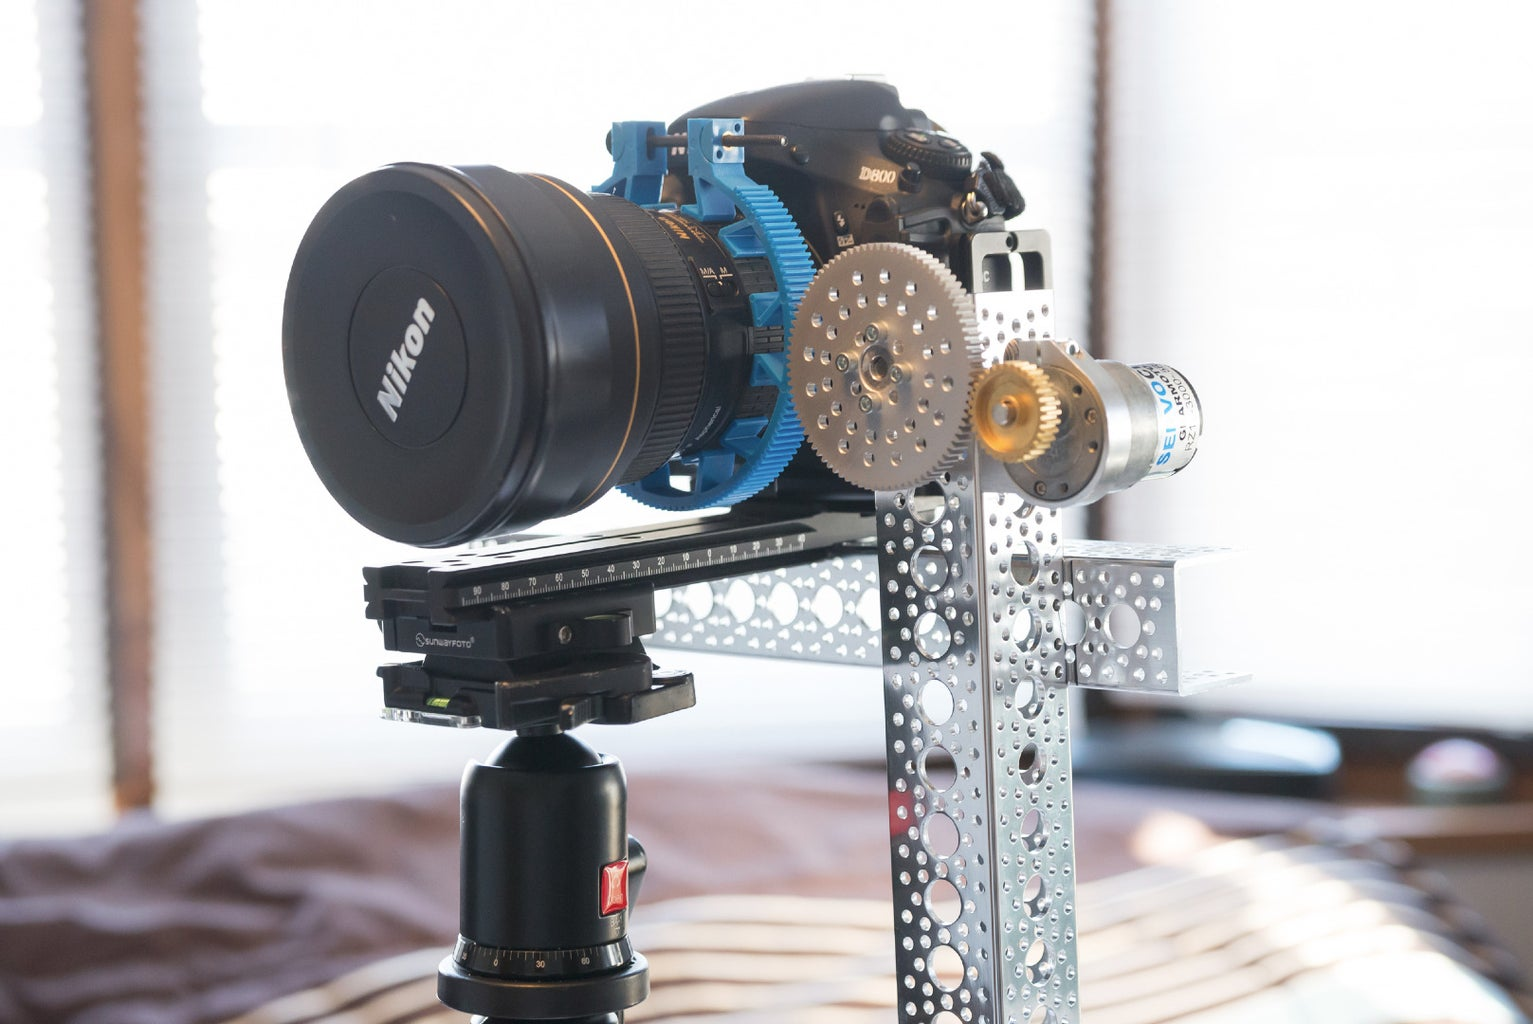 Attach a Gear to Your Lens and the Motor to Your Tripod